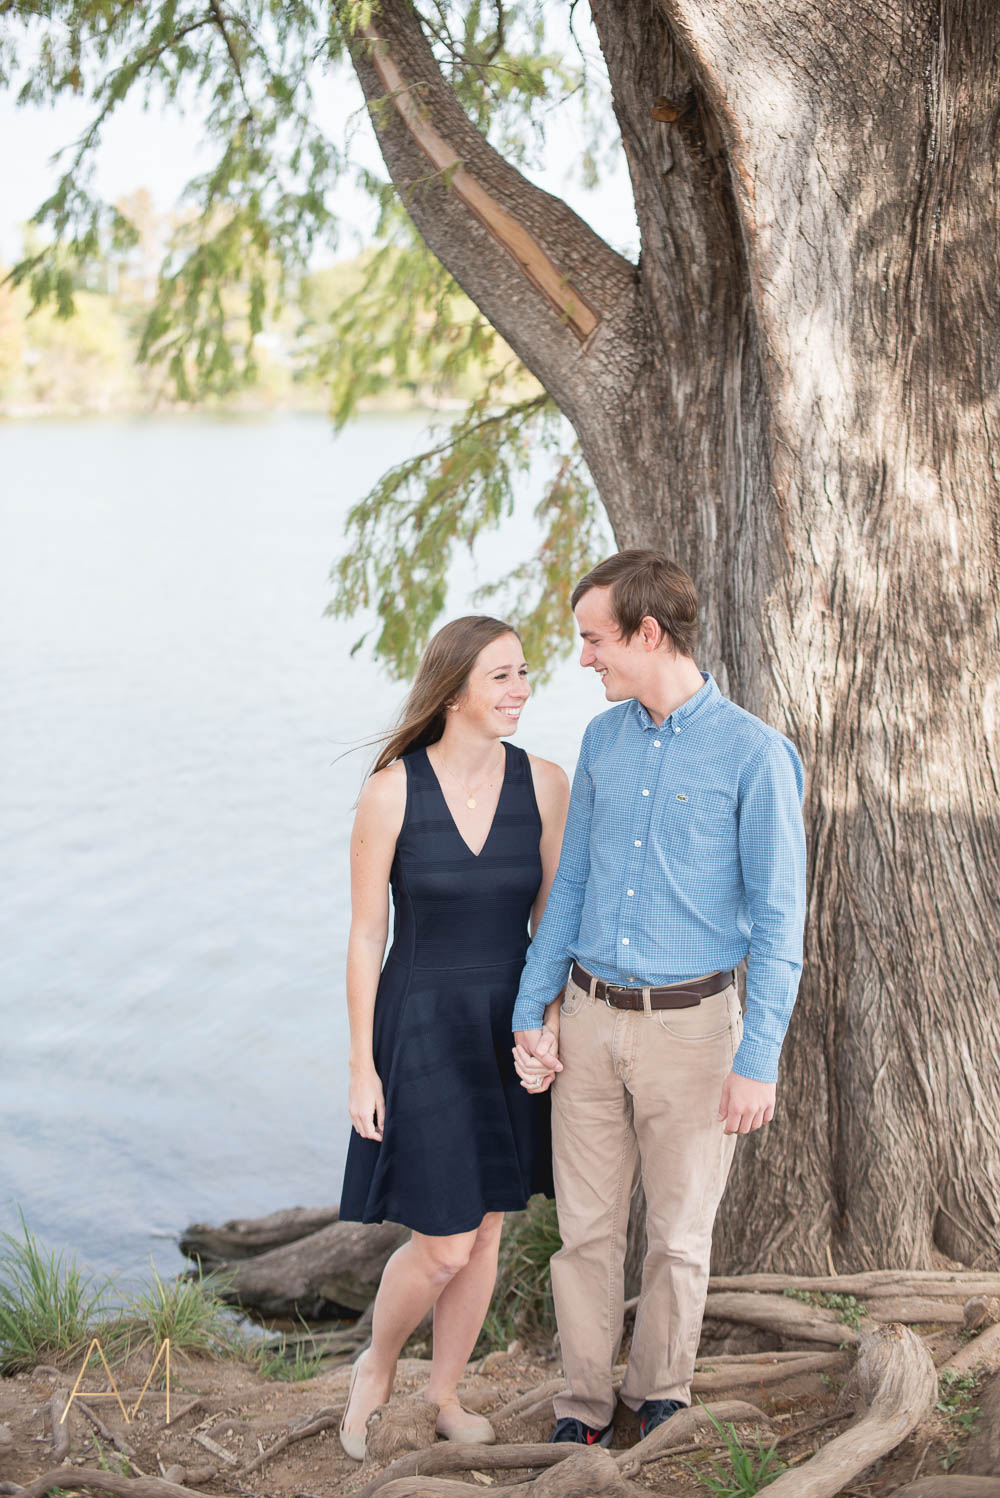 AshleighMillerWeddings-KatieMax-Engagement-Austin-TX-1196-Blog.jpg